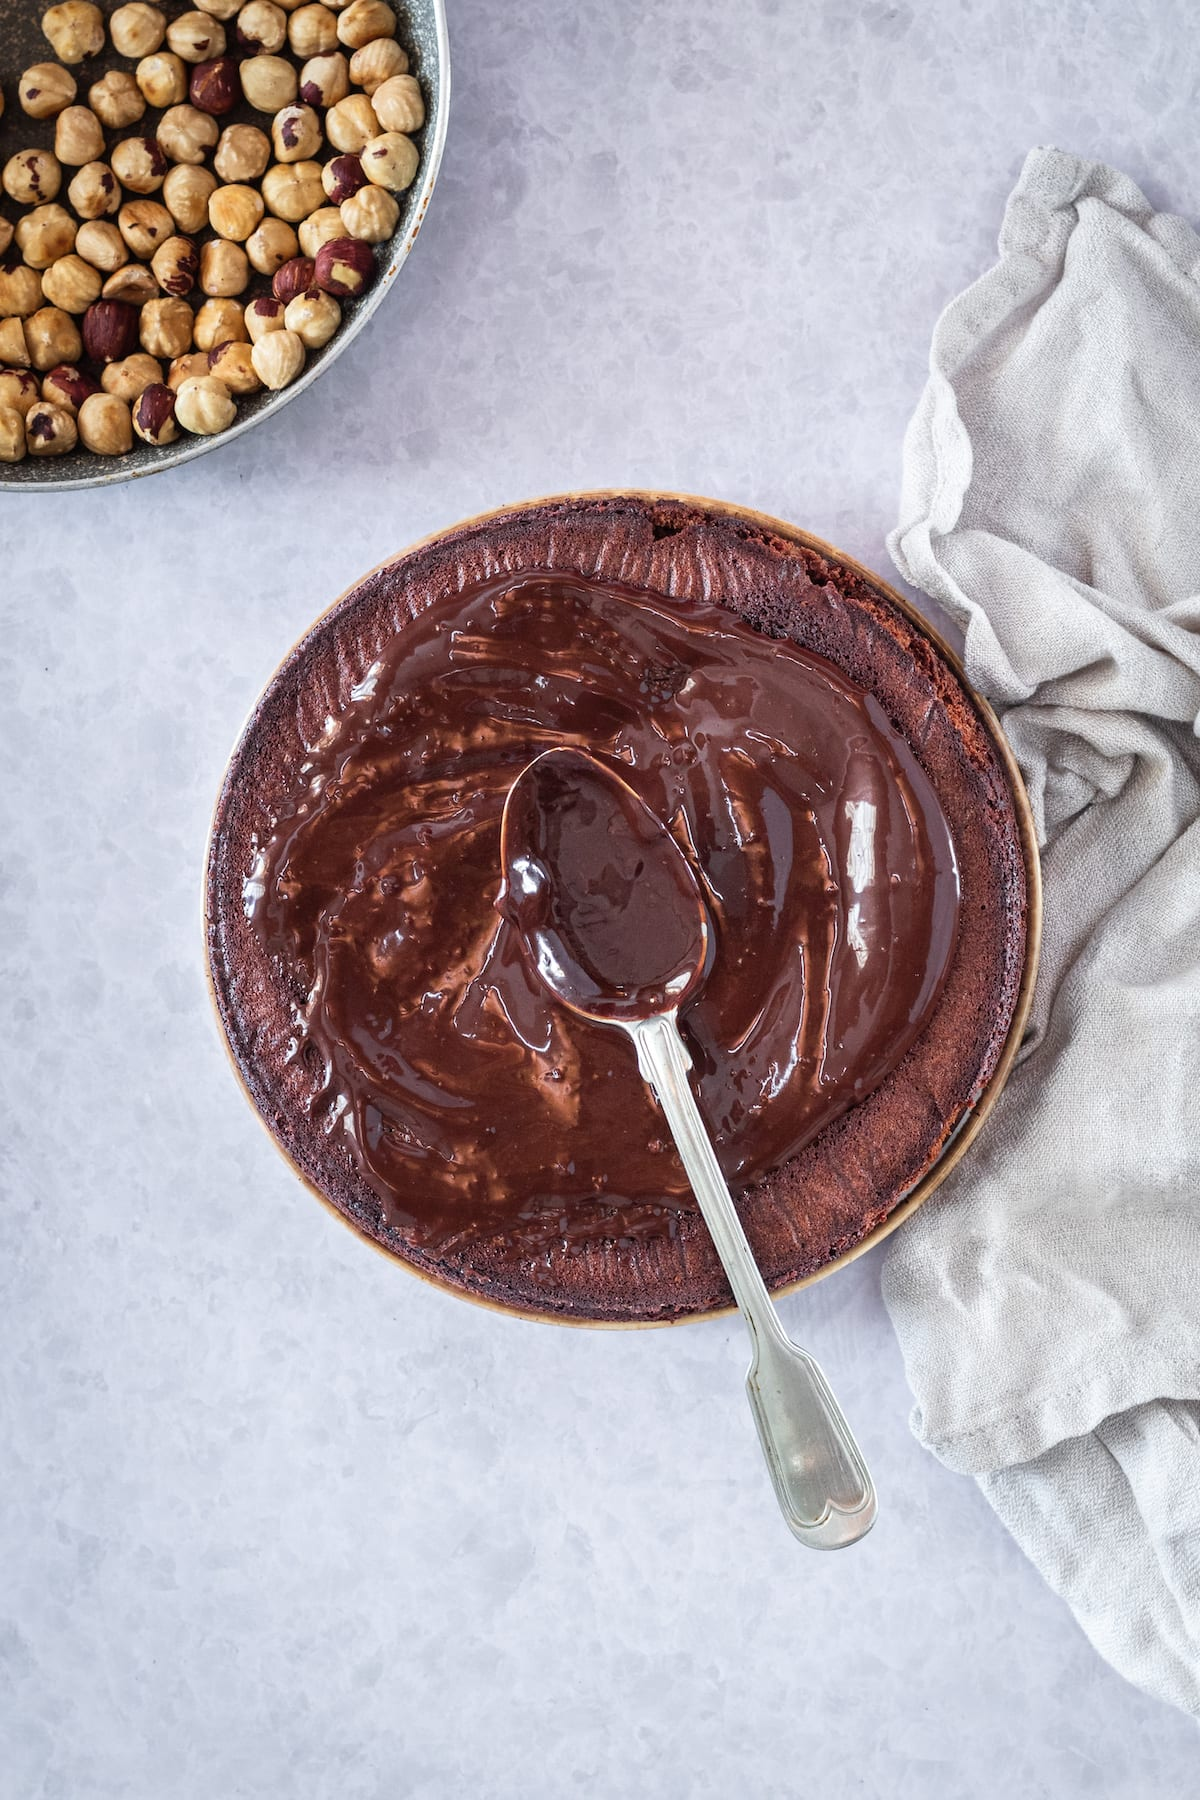 frosting a chocoalte cake with a spoon